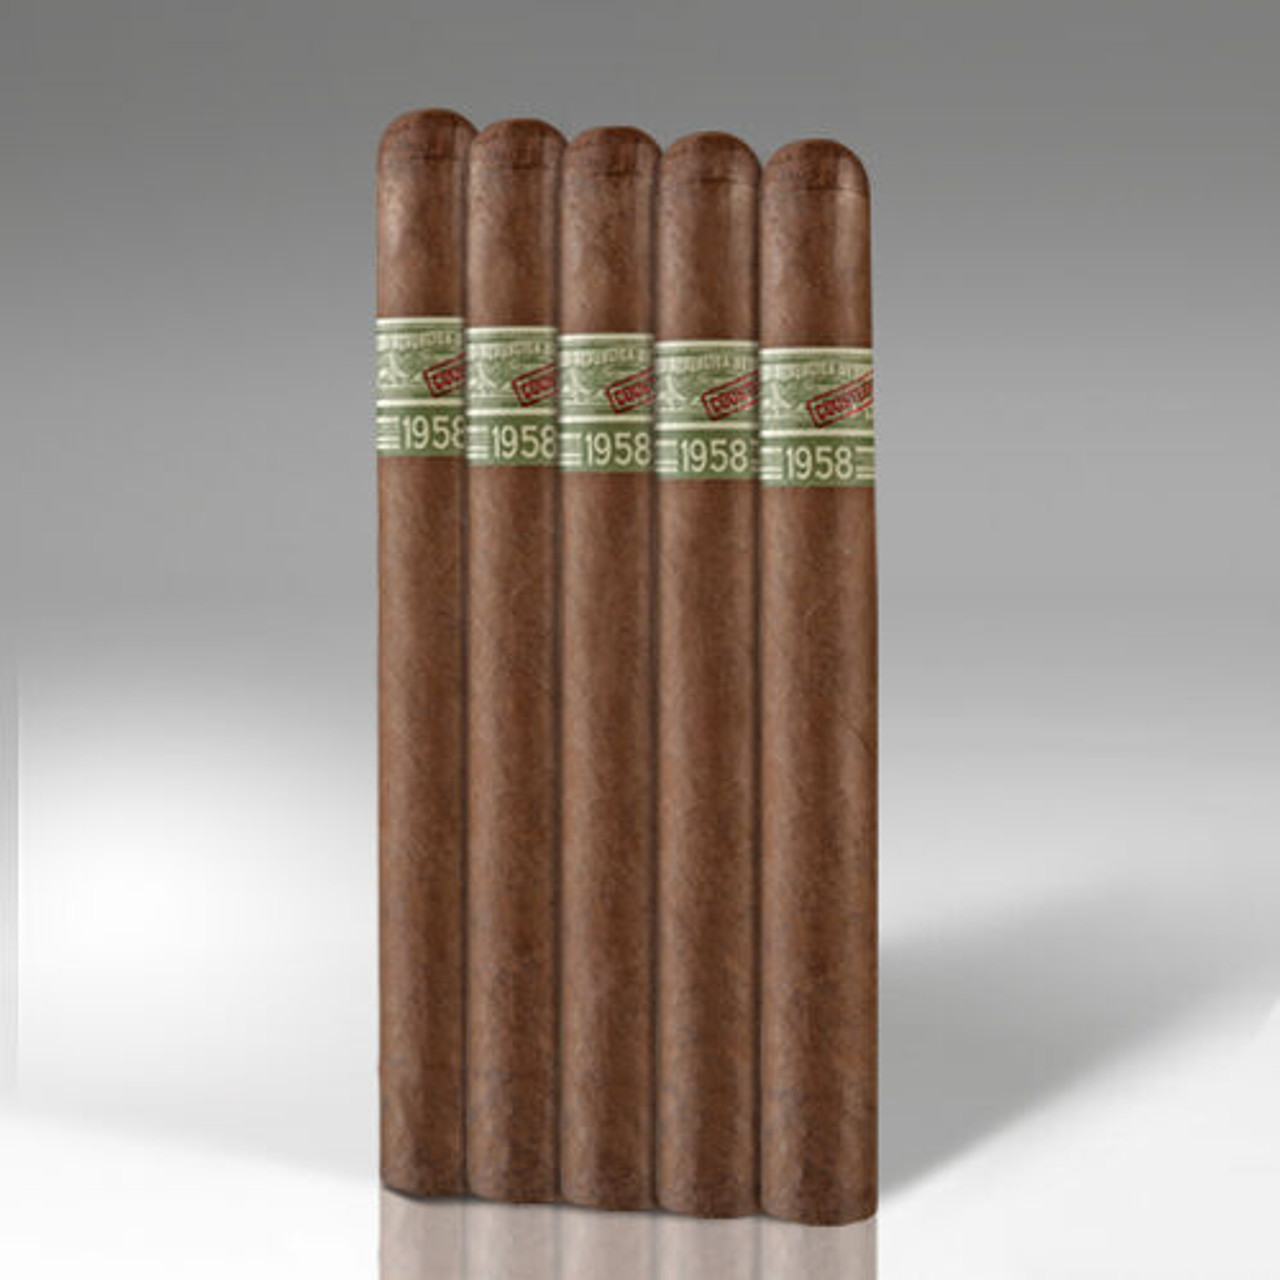 Genuine Pre-Embargo Counterfeit Cubans 1958 Prominentes Cigars - 7 x 52 (Pack of 5)